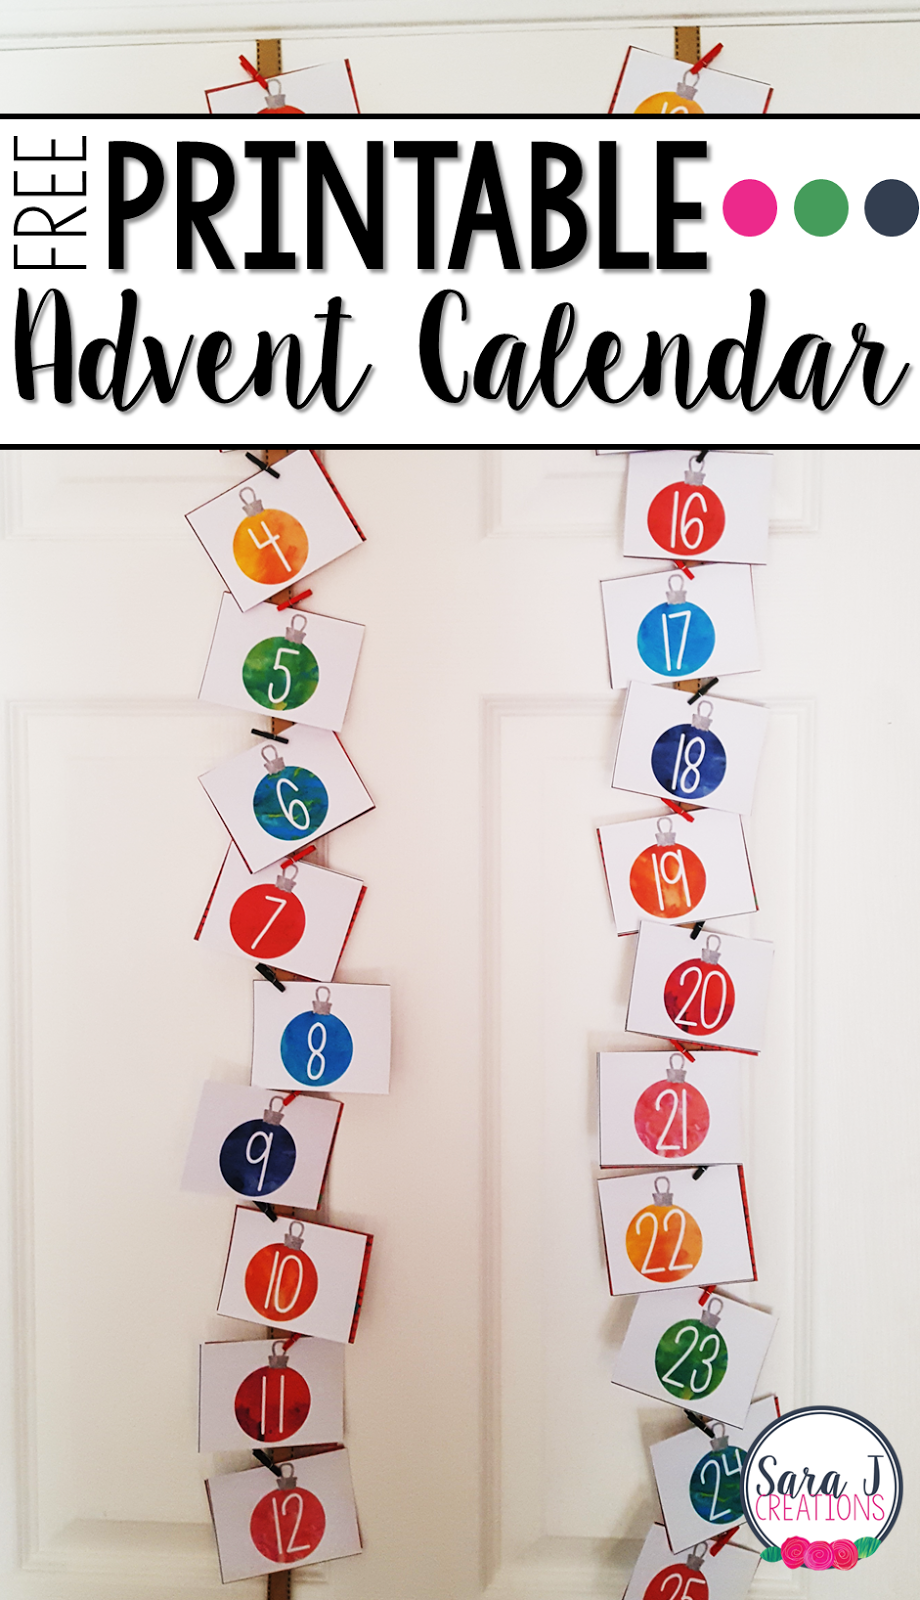 photograph regarding Advent Calendar Printable named Cost-free Printable Arrival Calendar Sara J Creations